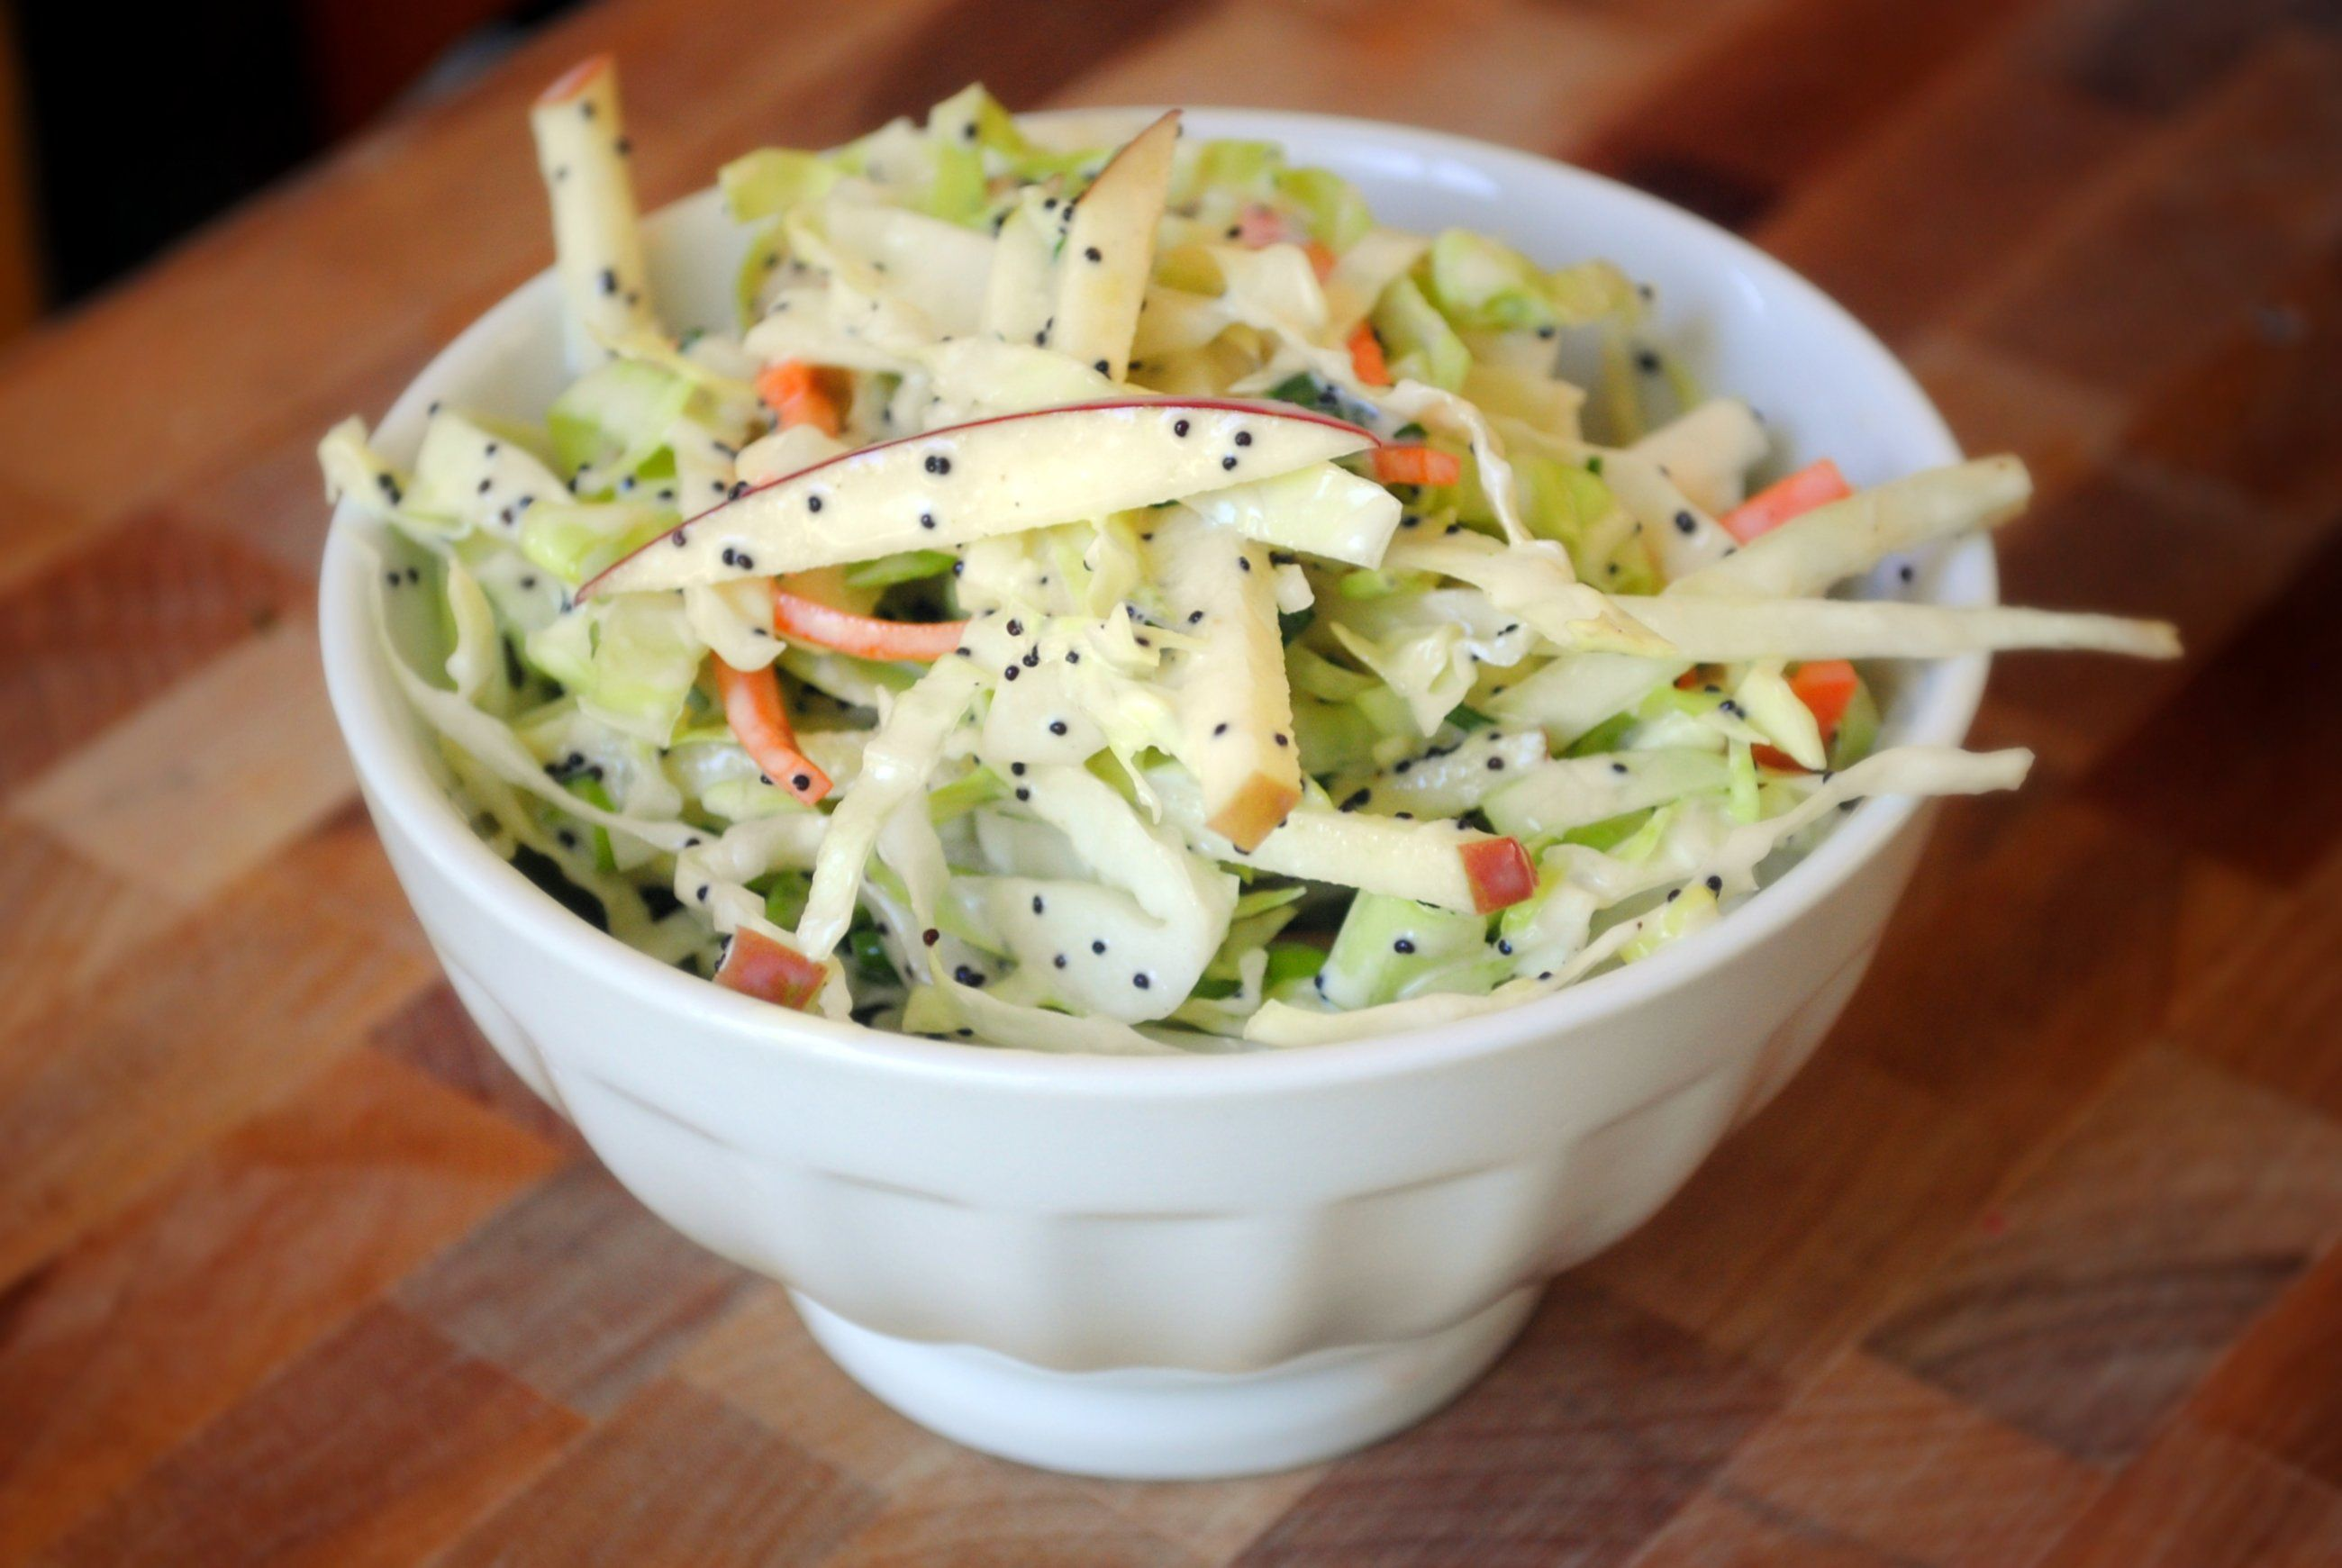 Apple cabbage slaw with creamy poppy seed dressing